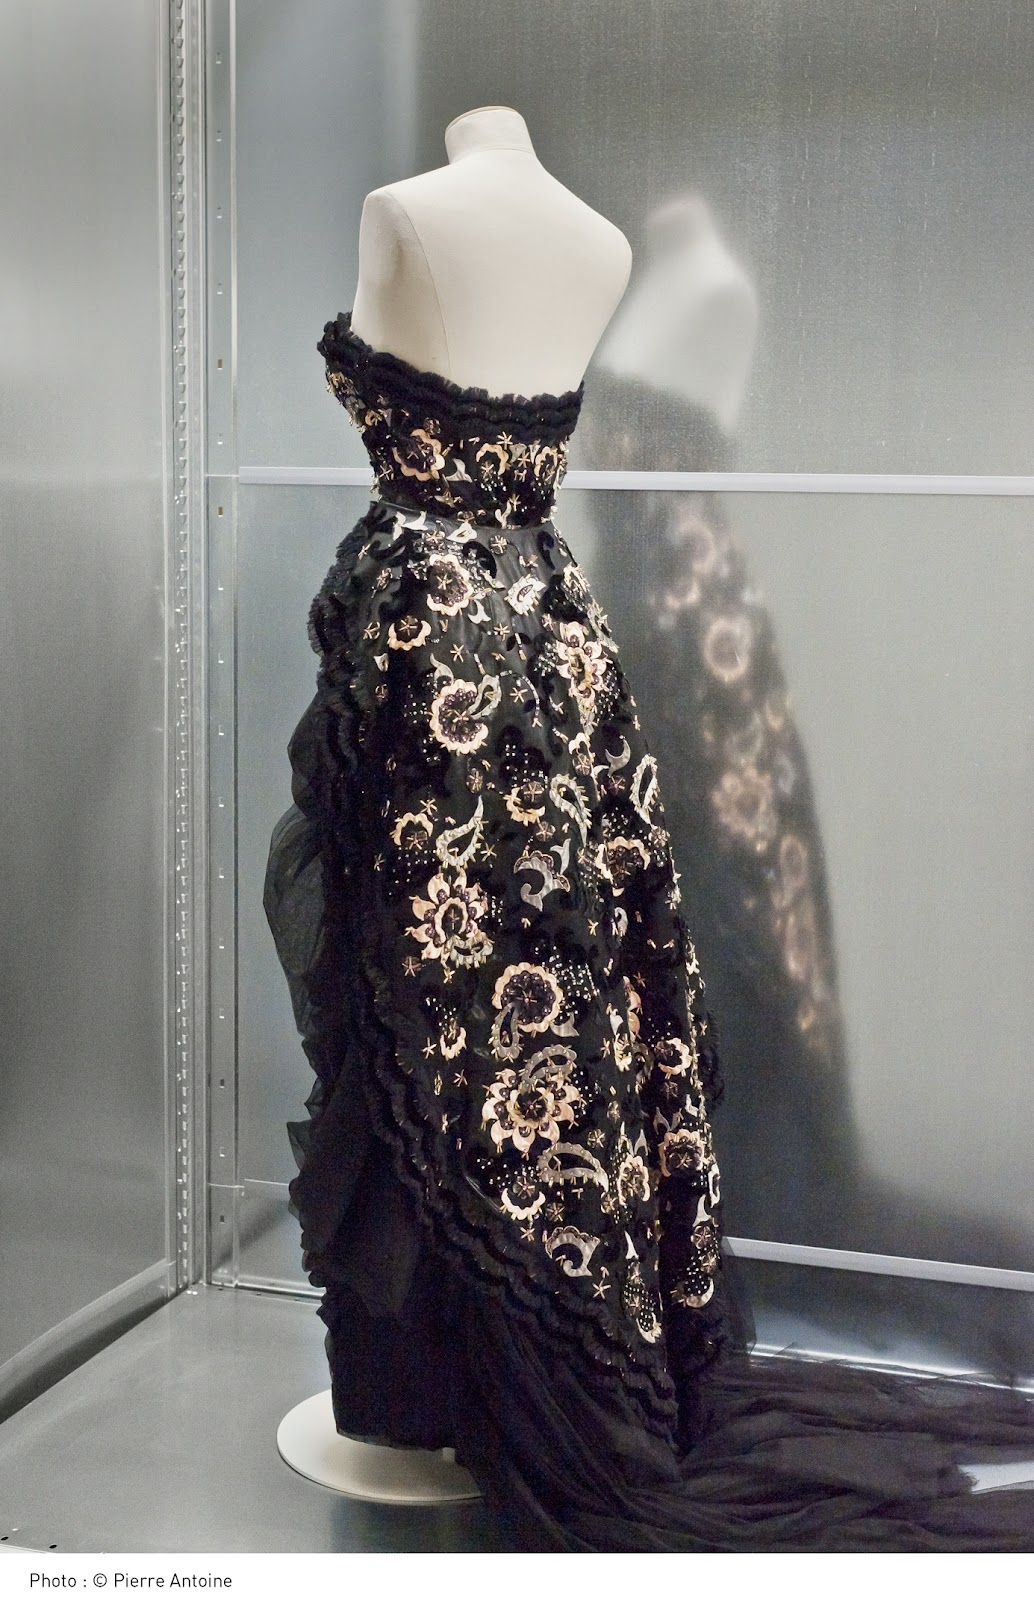 Cristóbal Balenciaga: The Great Master of Couture | HuffPost